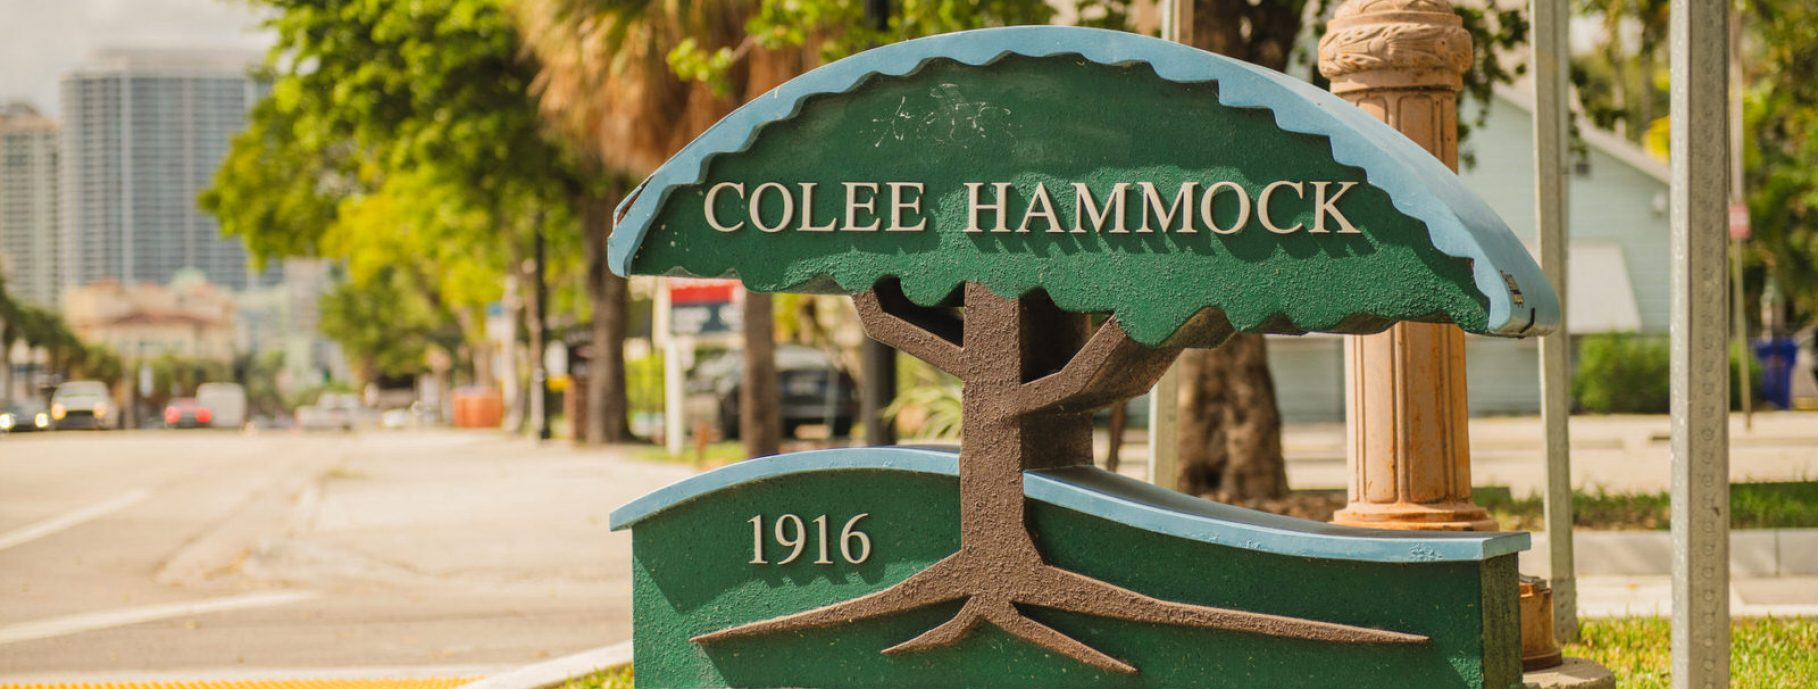 Colee Hammock Fort Lauderdale Real Estate